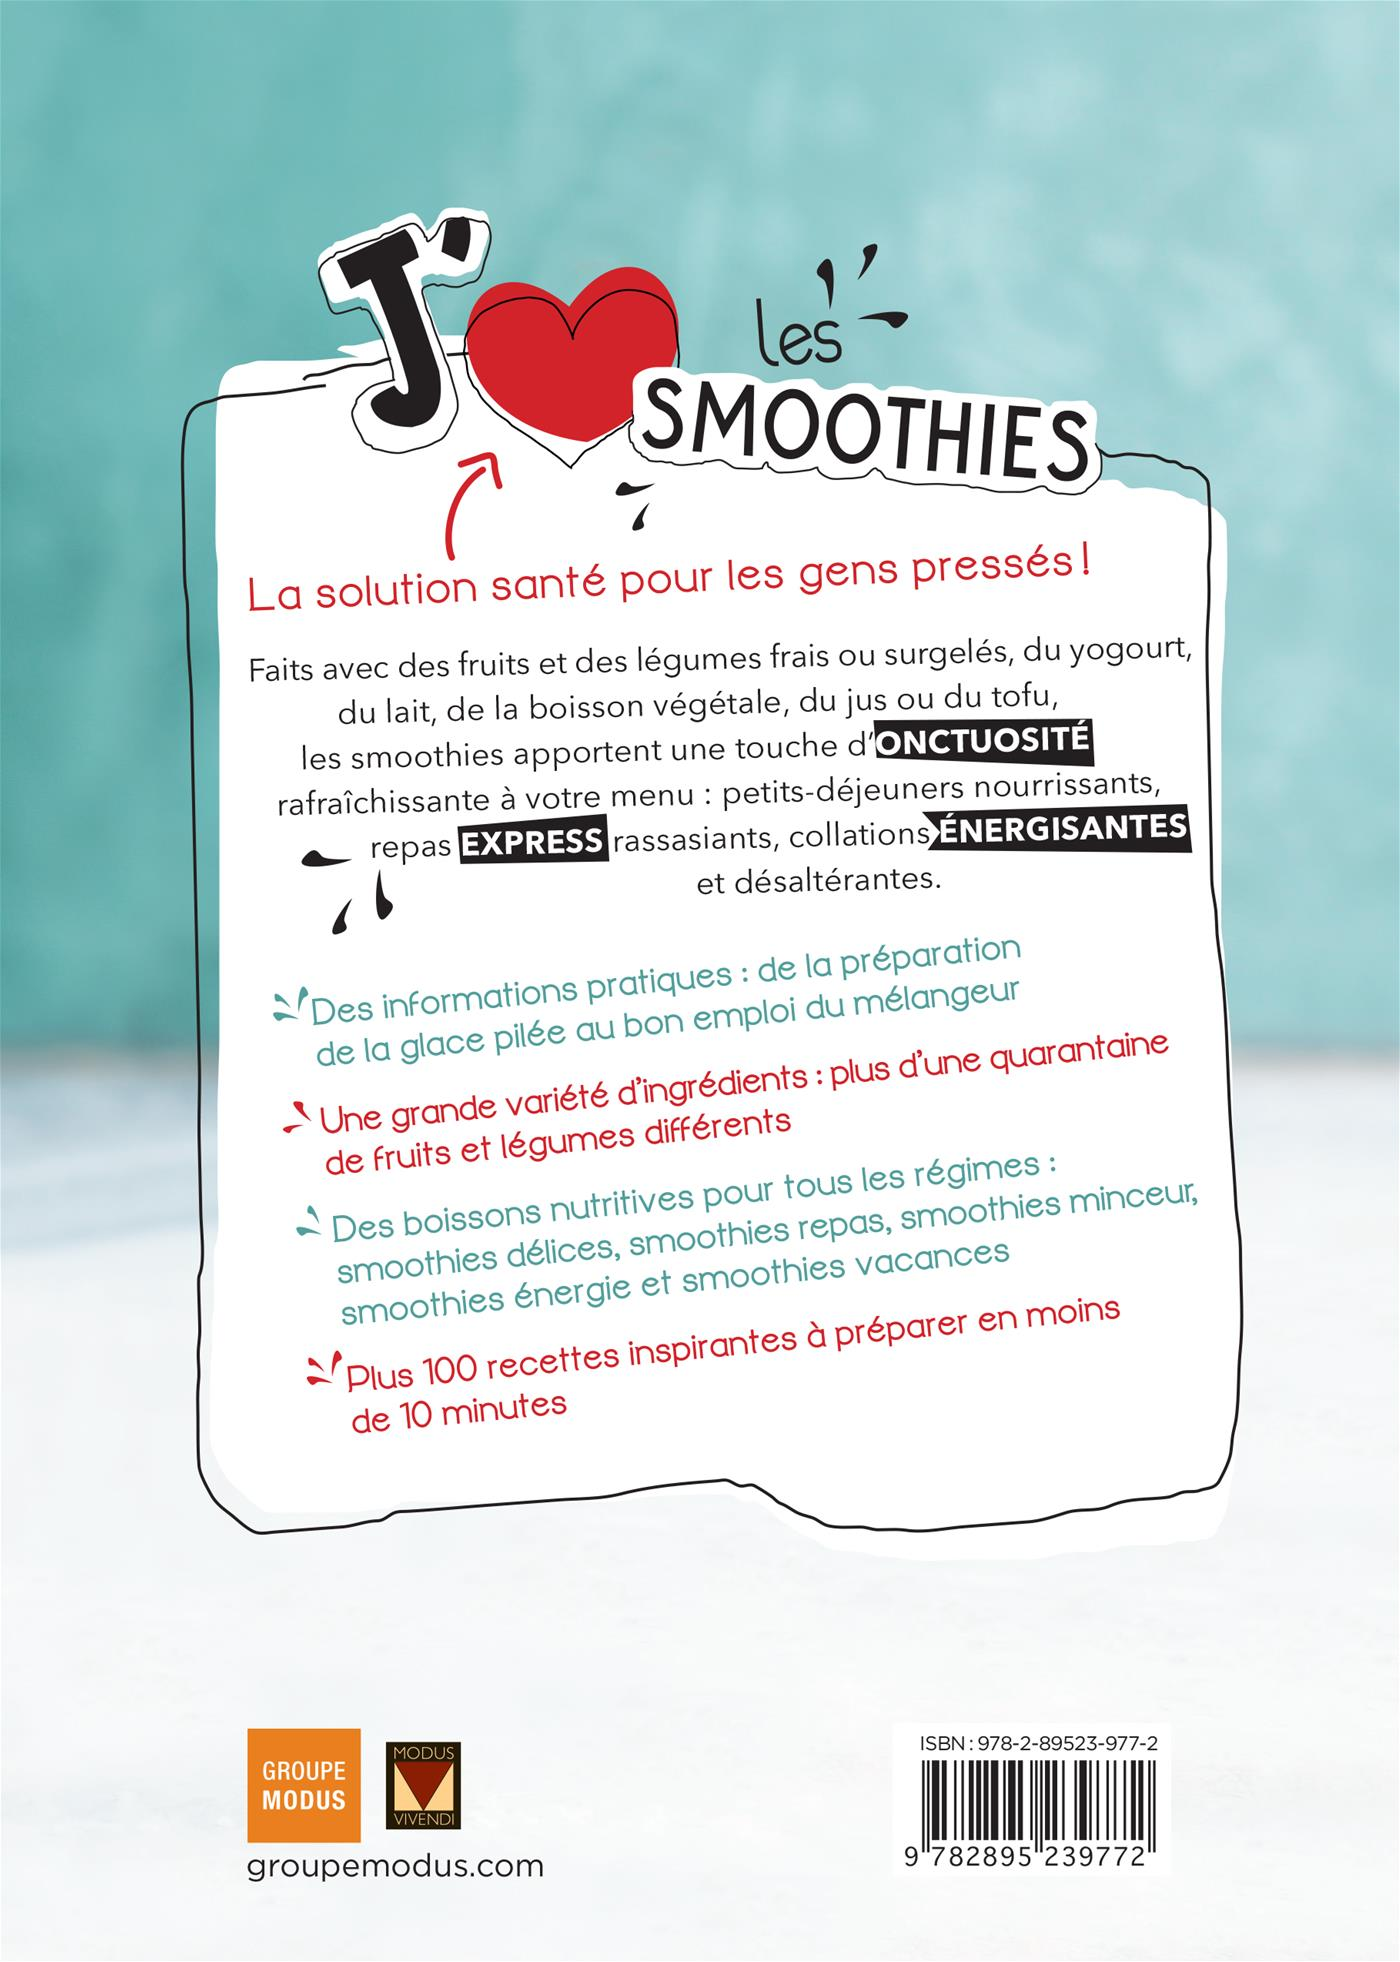 J'aime les smoothies - Louise Rivard revers